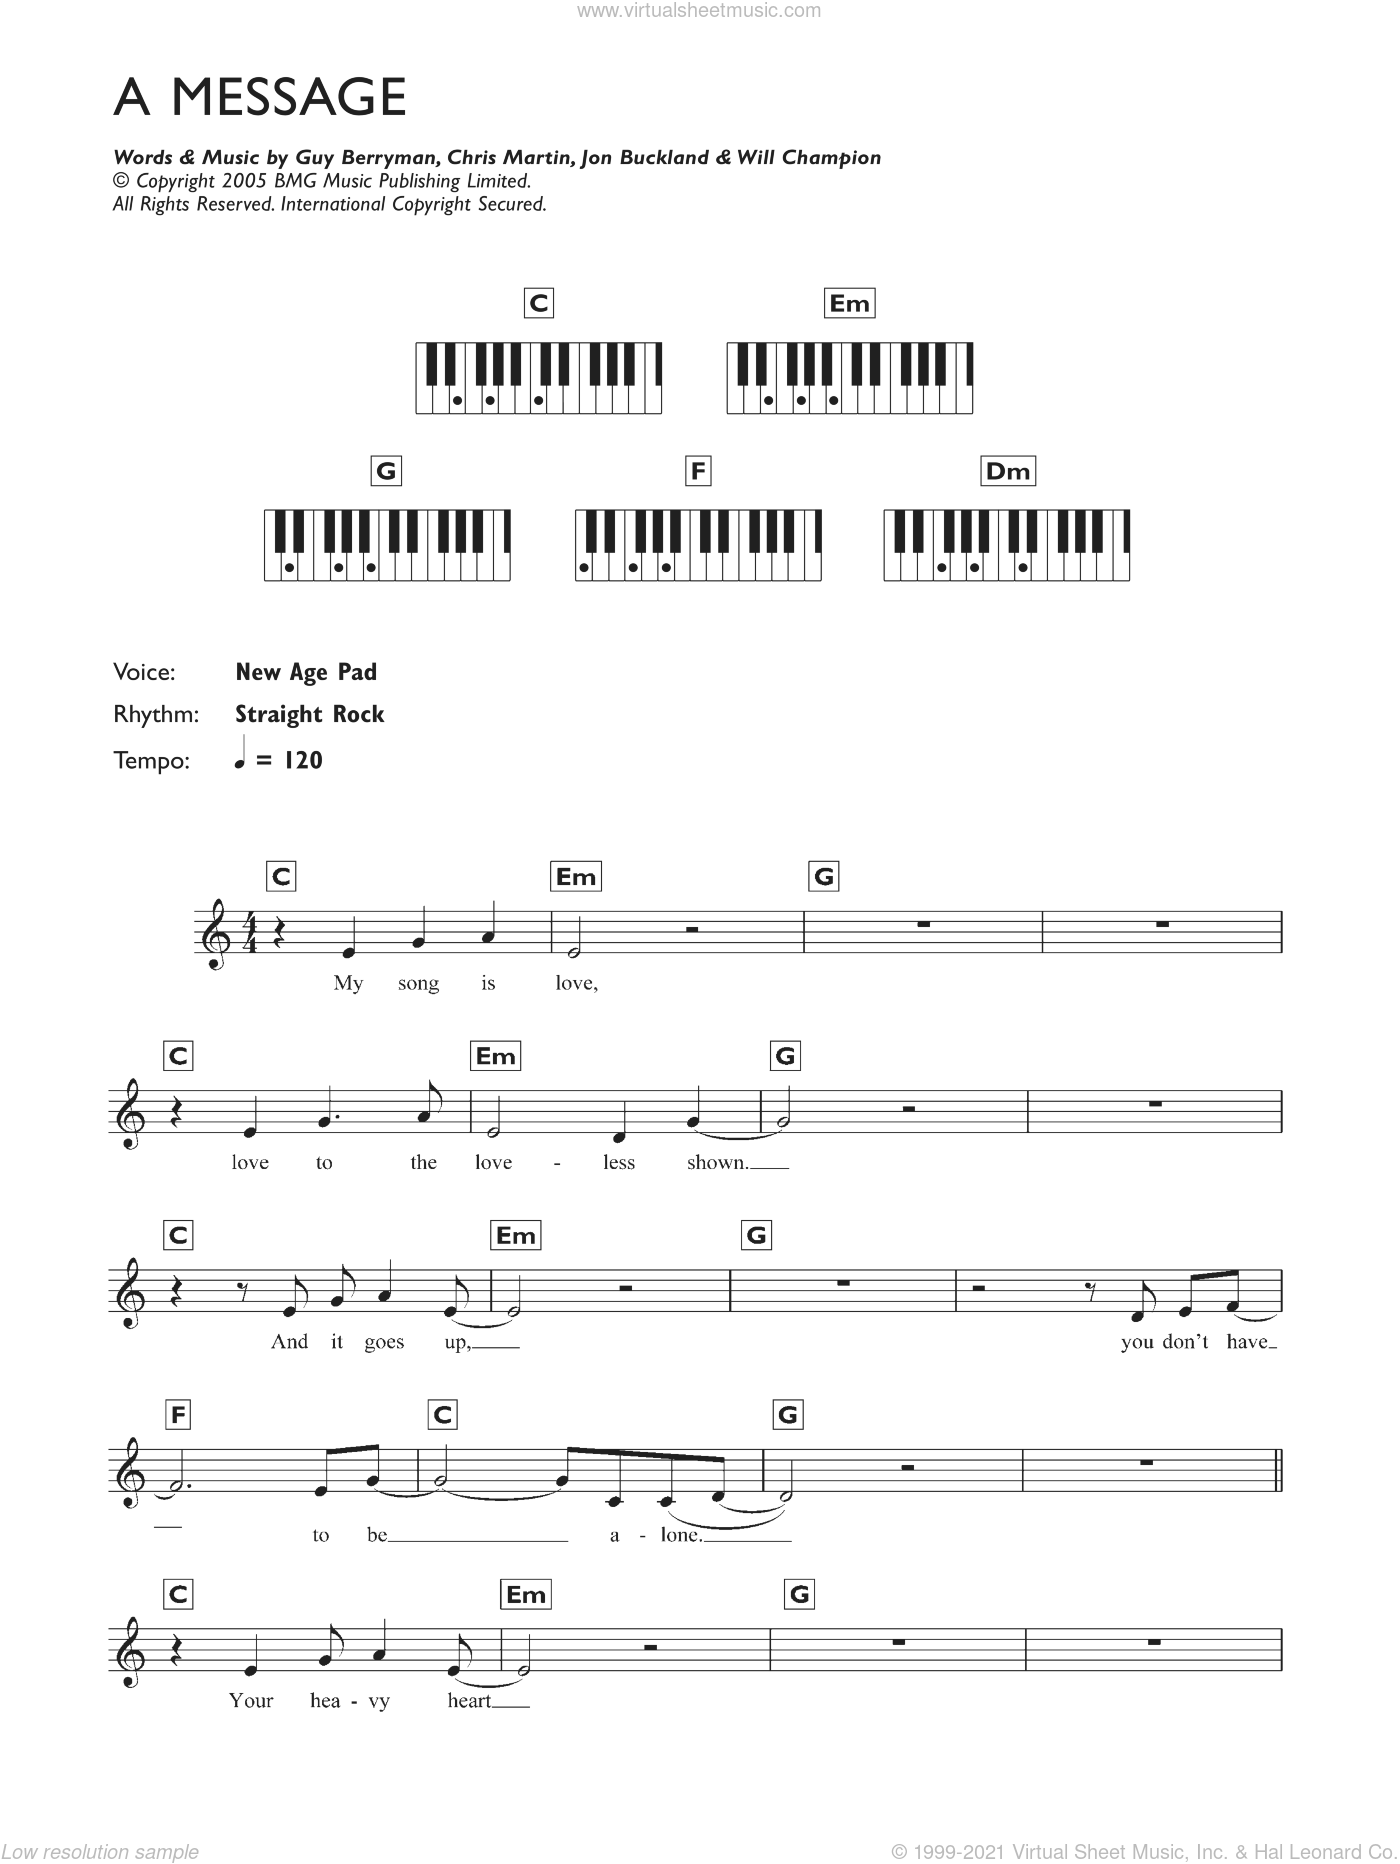 A Message sheet music for piano solo (chords, lyrics, melody) by Chris Martin